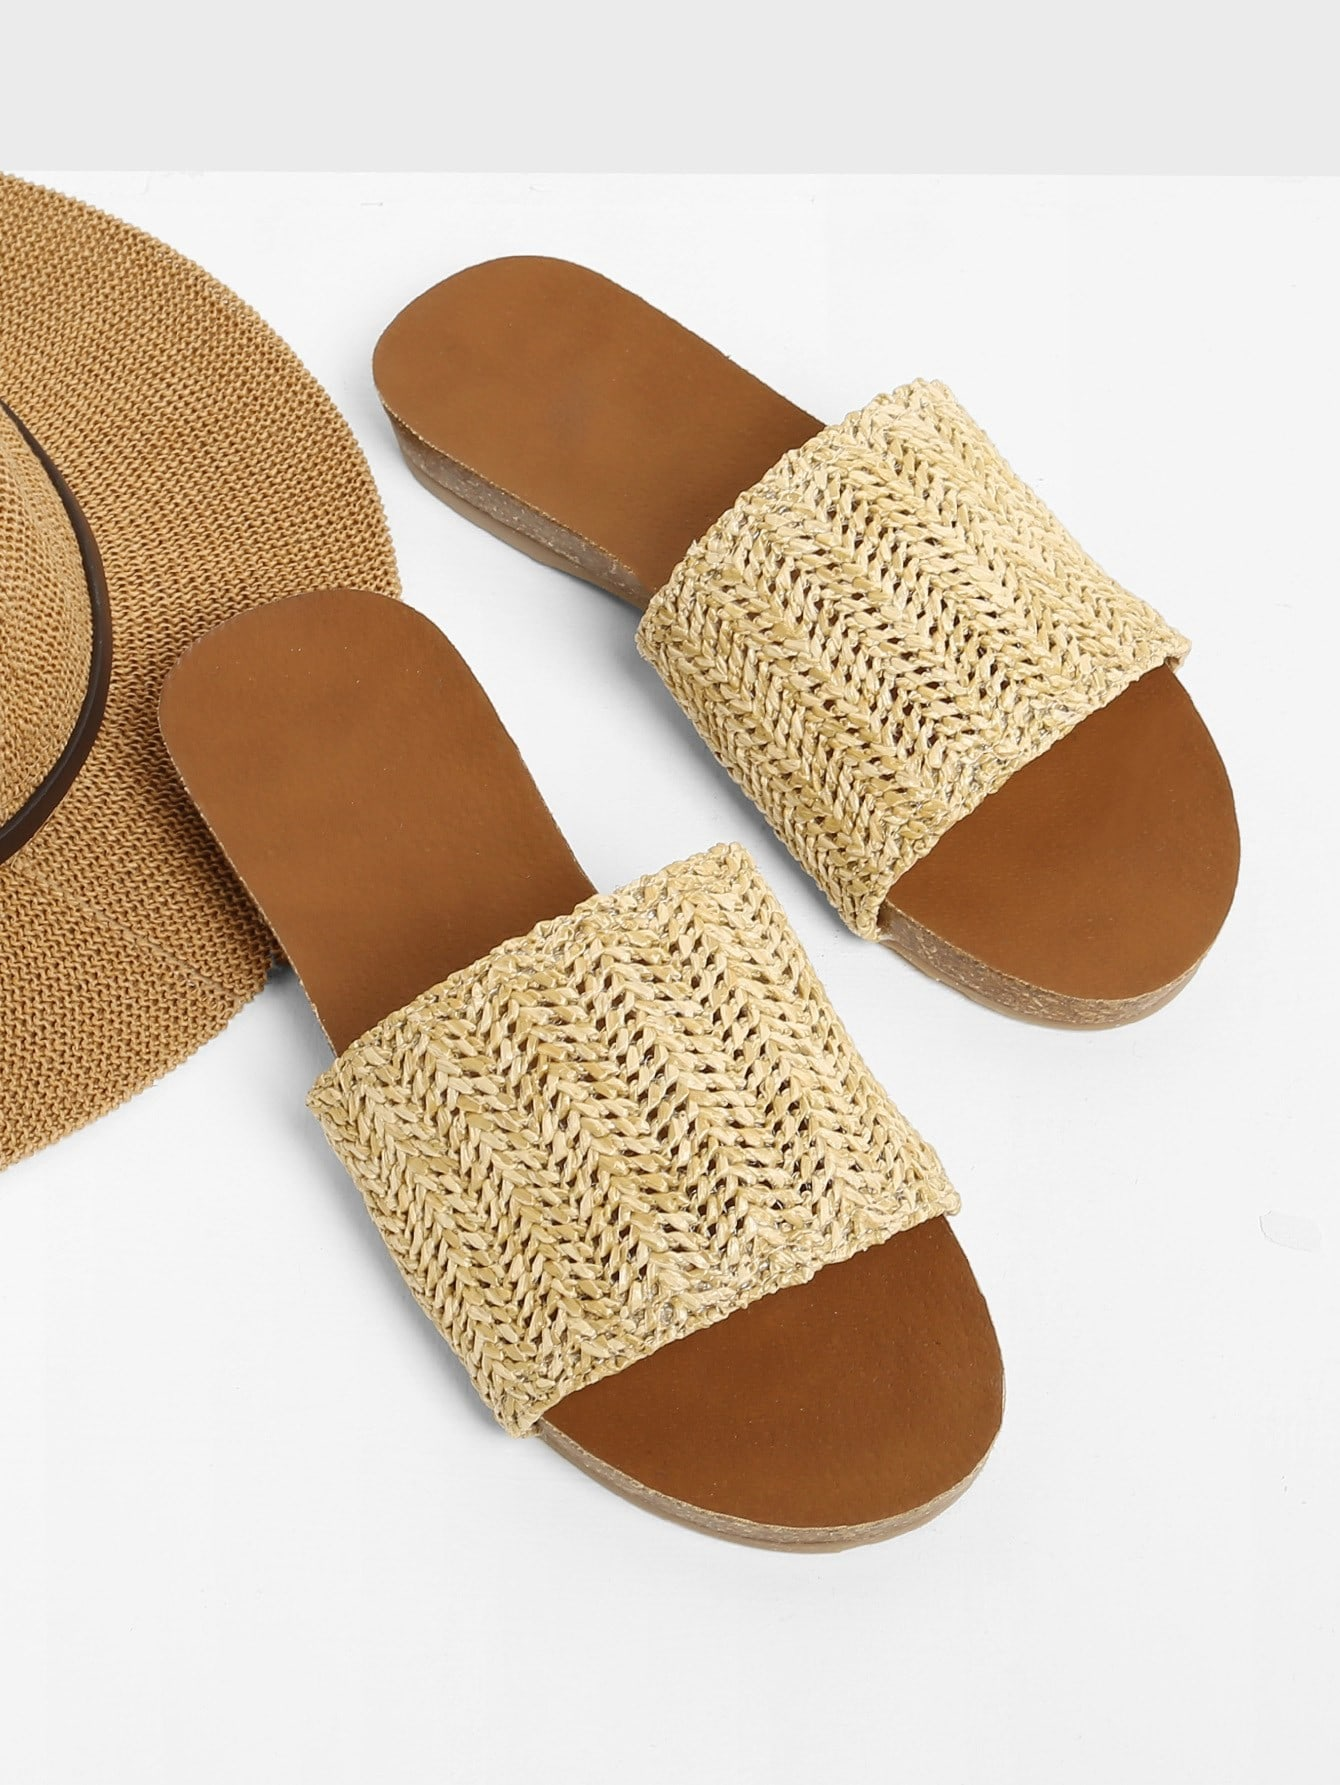 Woven Flat Slide Sandals woven design straw flat sandals